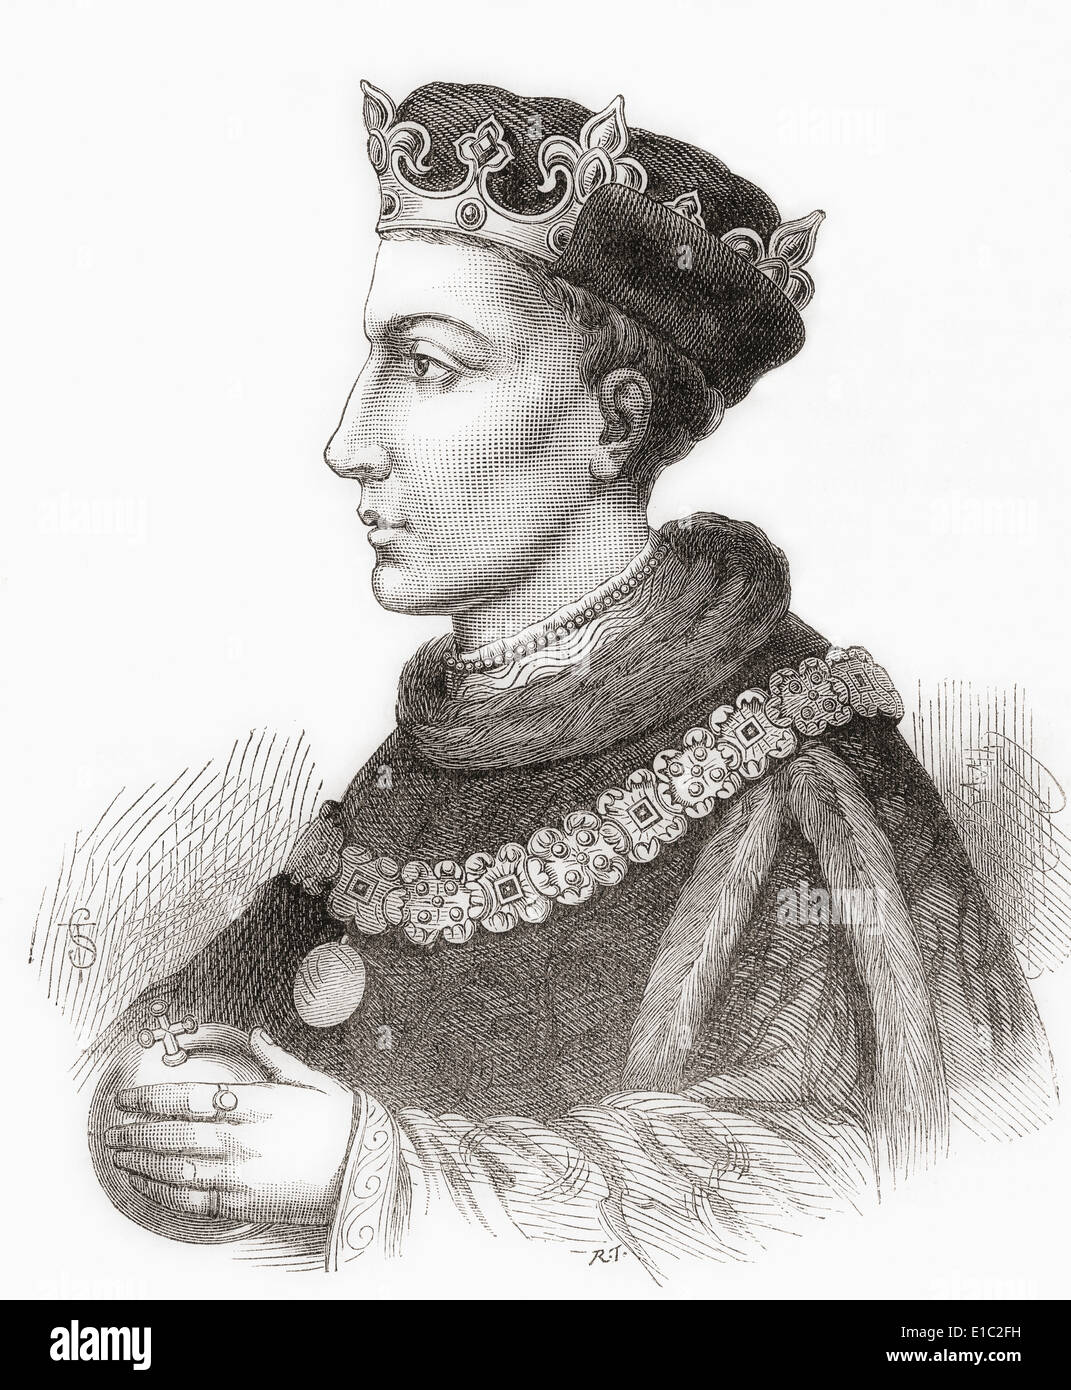 Henry V , 1386 – 1422, aka the Star of England. King of England. From Cassell's History of England, published c.1901 - Stock Image